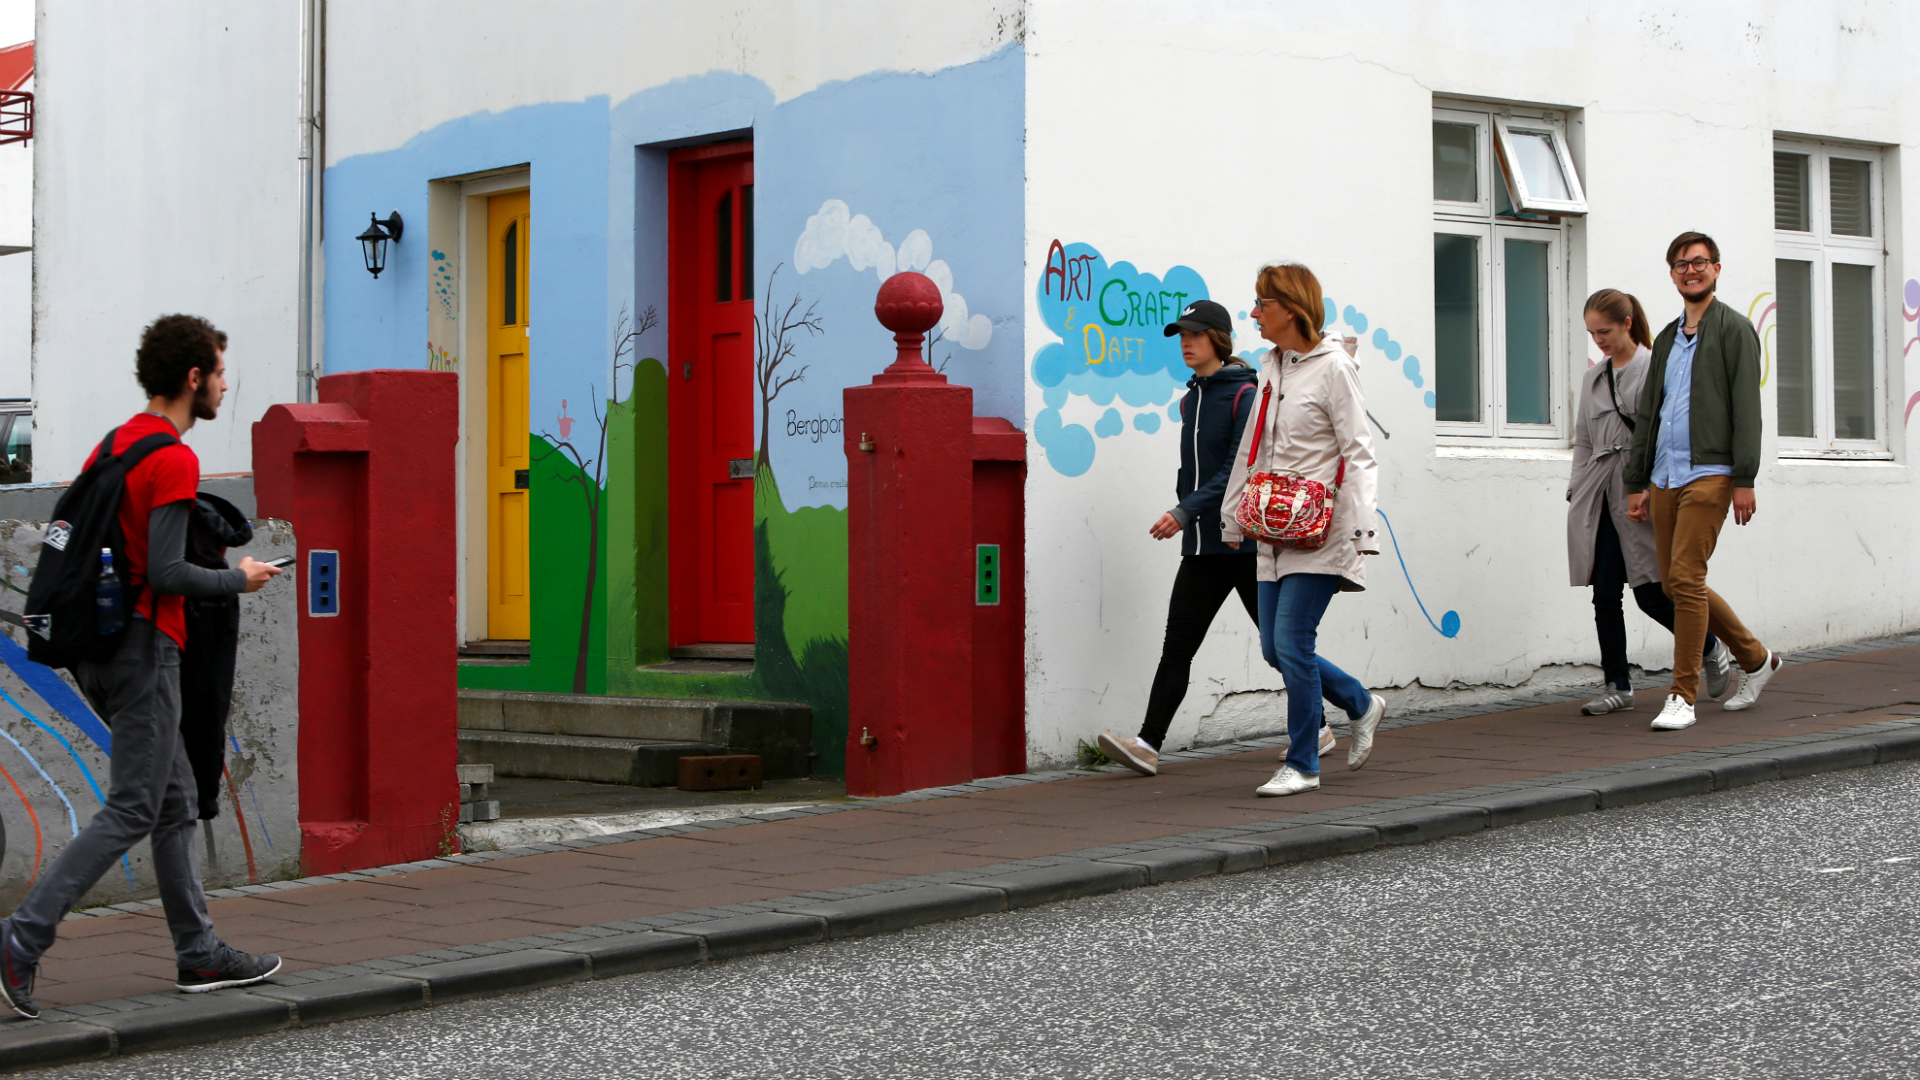 People walk pass pass a colorful house in Reykjavik, Iceland on August 4, 2017.